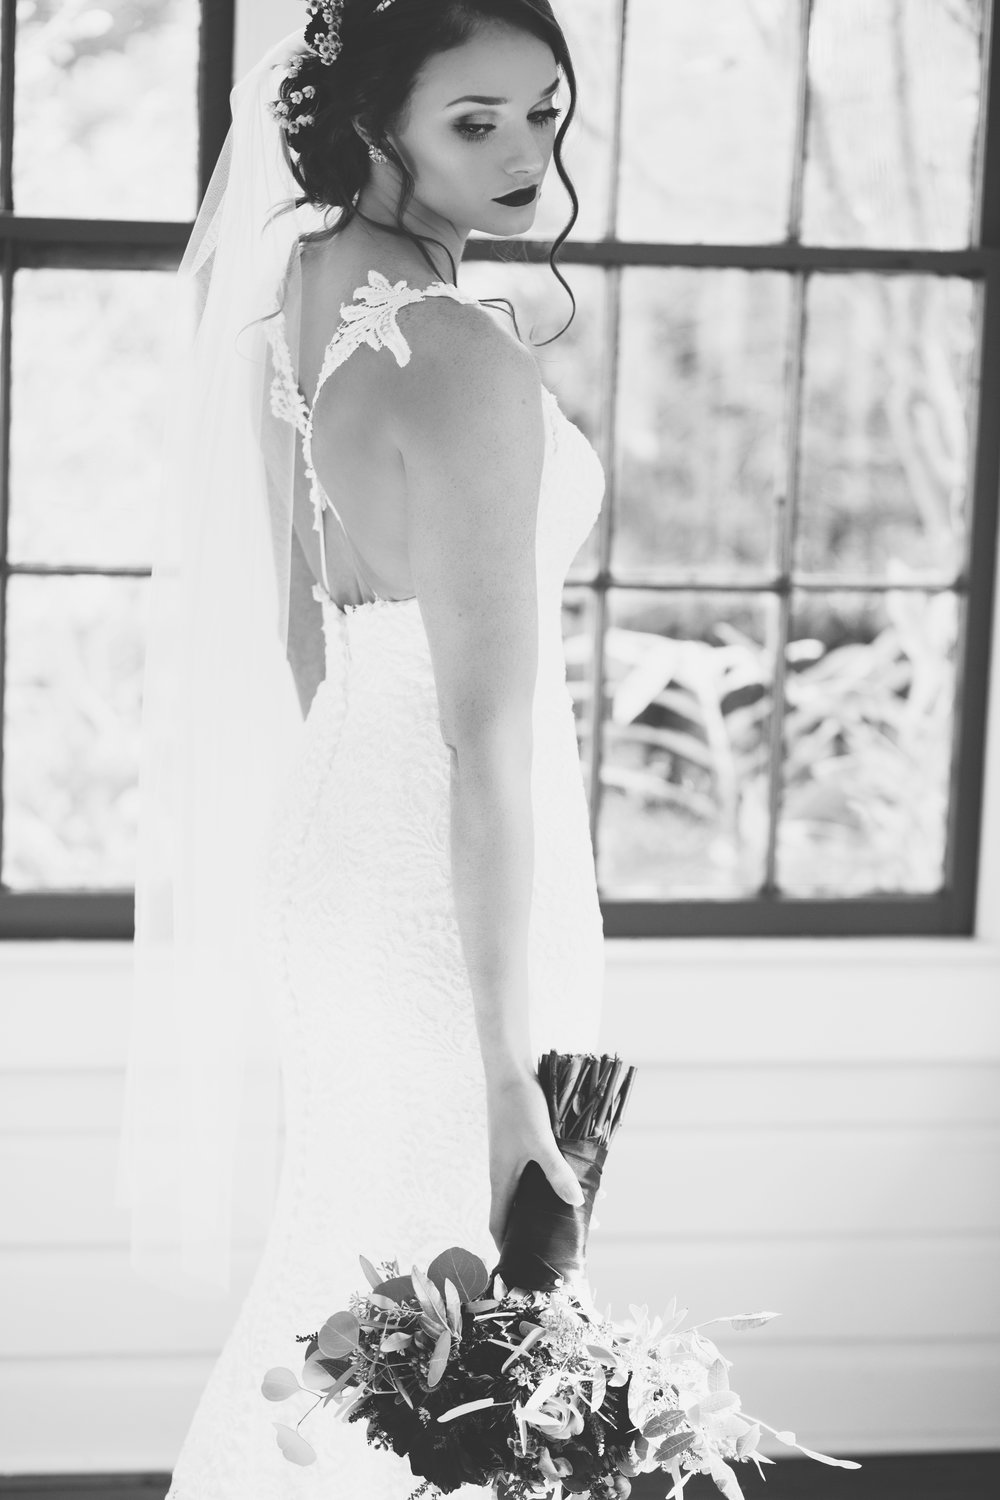 ivory-and-beau-bridal-boutique-courtney-hyatt-photography-hart-to-hart-photography-ti-adora-wedding-gown-ti-adora-7651-8.jpg